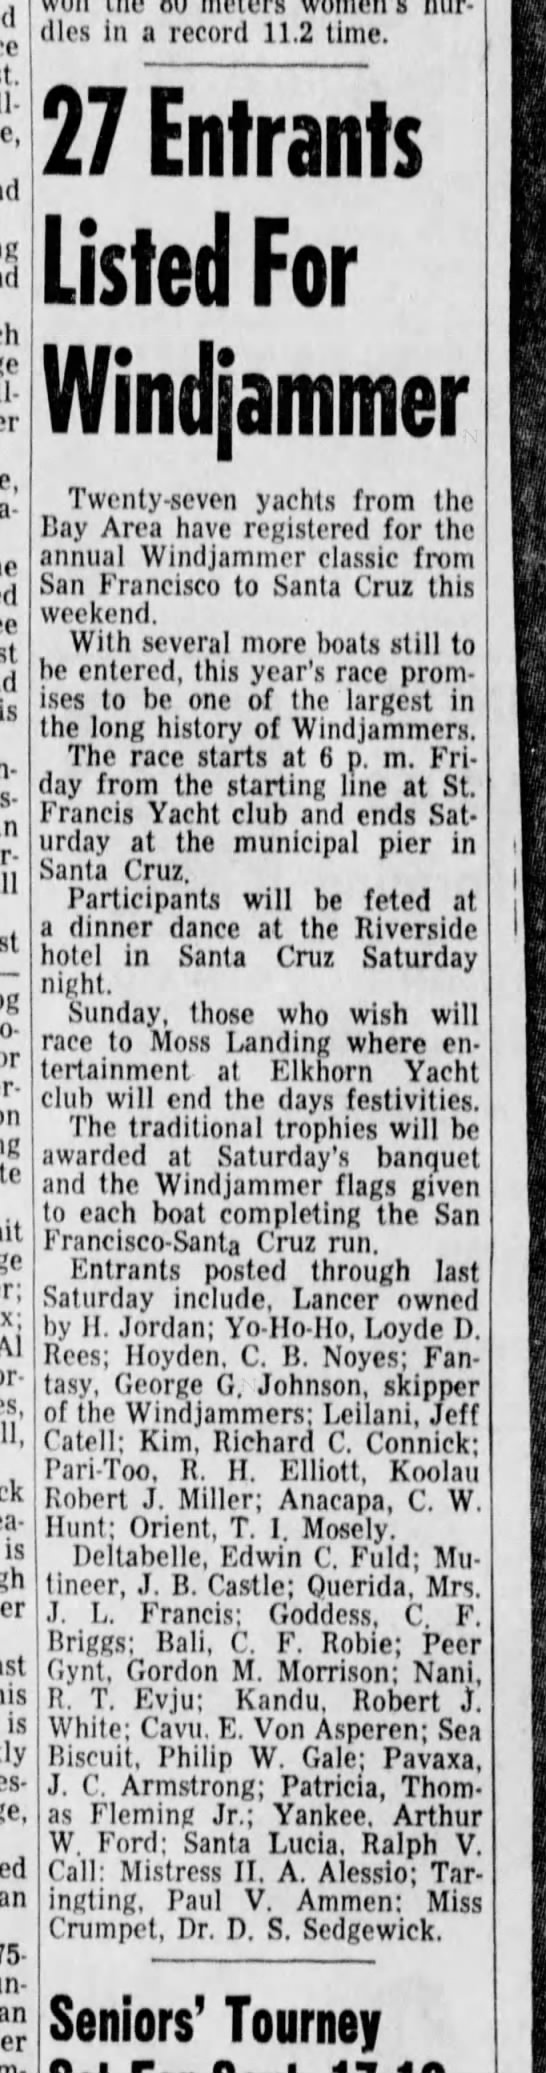 "2 Sept 1959 Santa Cruz Sentinel ""27 Entrants Listed for Windjammer"" Includes Goddess (CF Briggs) - Bur-ford two-a-day on Al is is 275-pound won..."